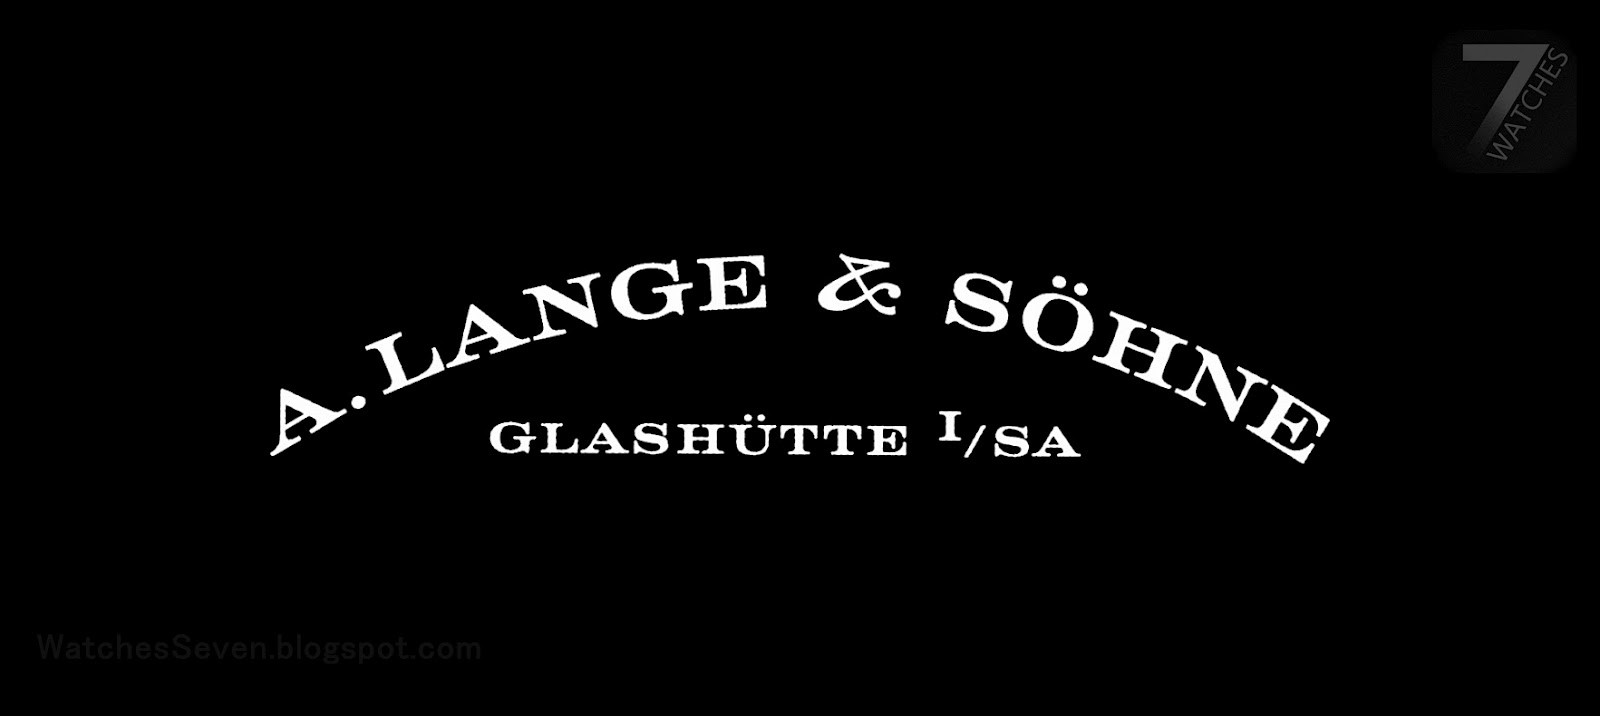 Watches 7: A. Lange & Söhne - Saxon Engineering Prowess